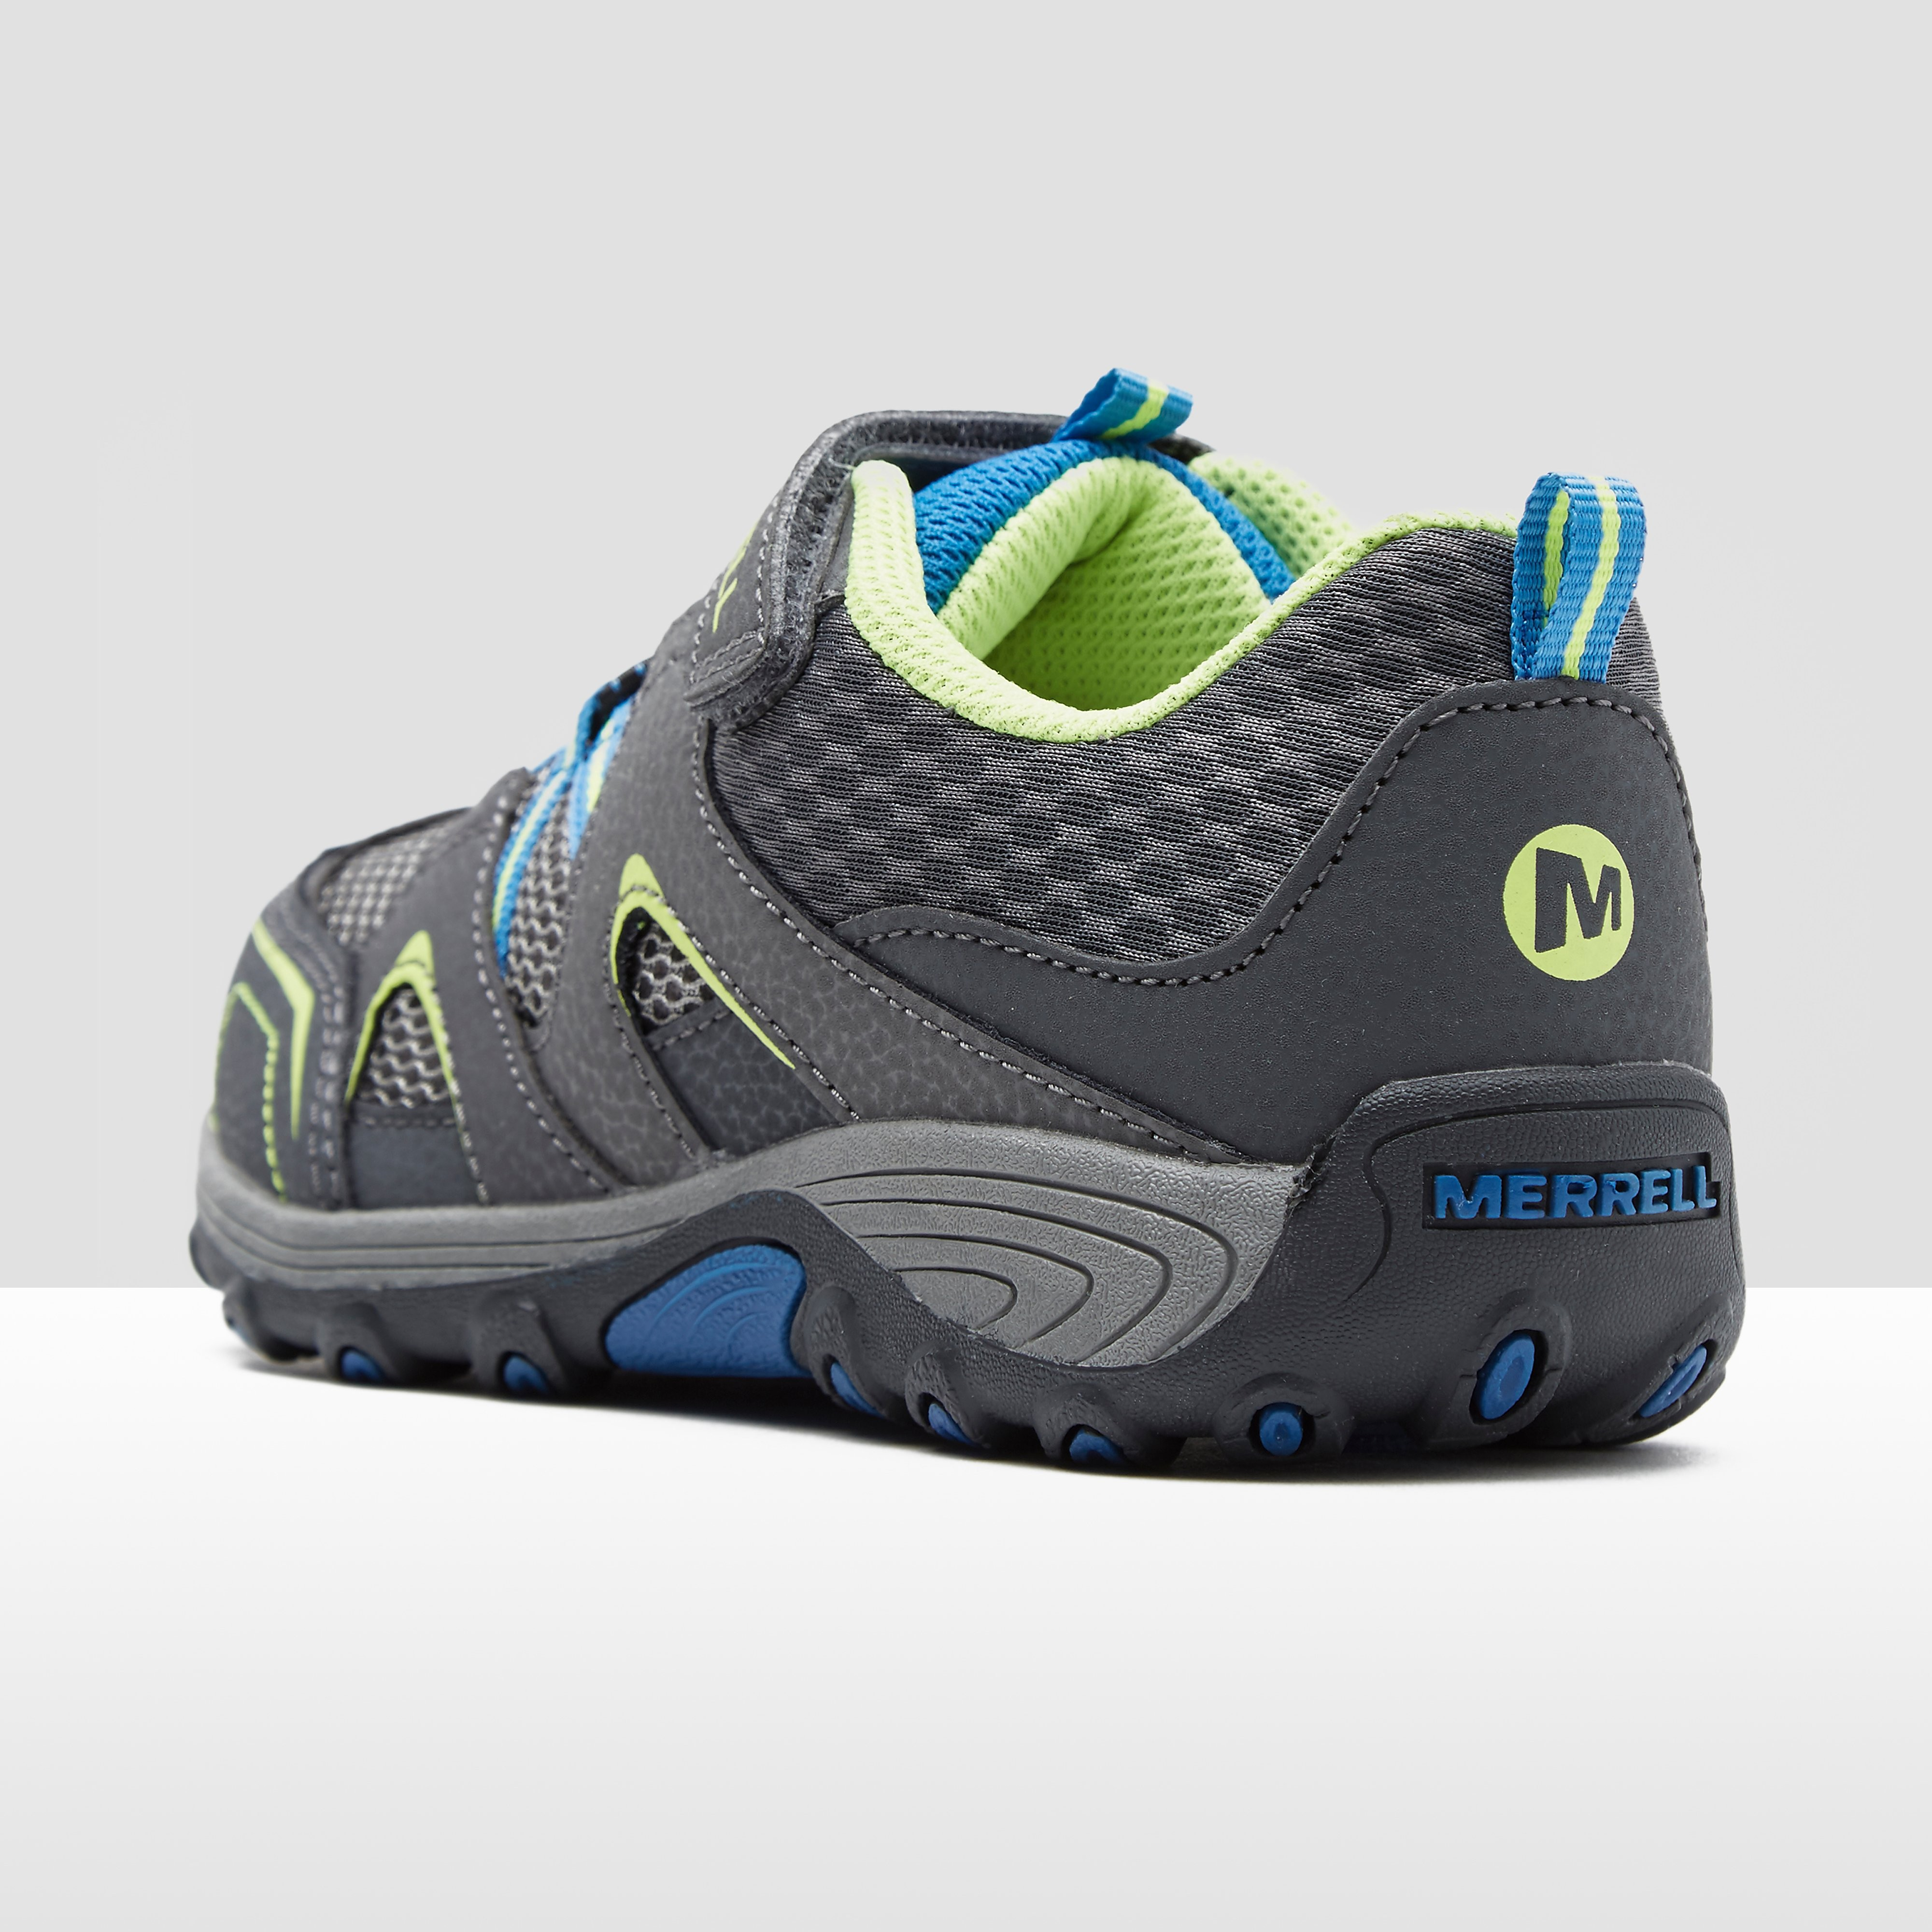 Merrell Trail Chaser Junior Walking Shoes